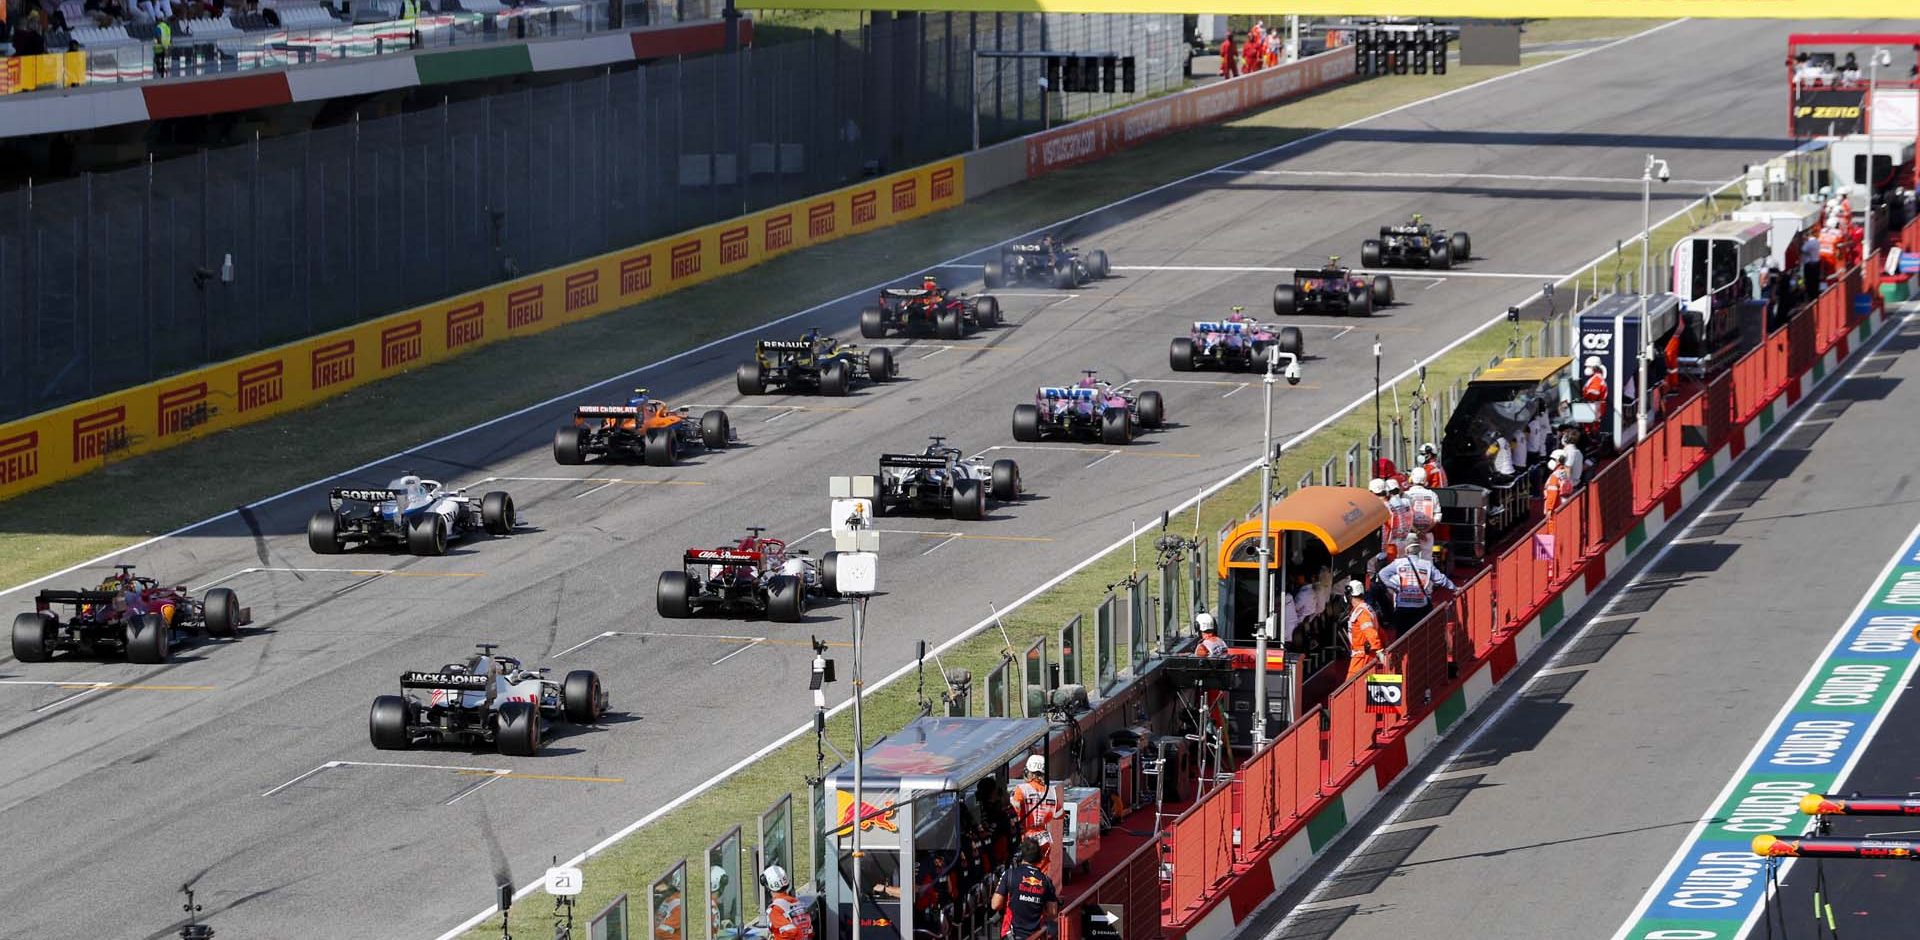 MUGELLO CIRCUIT, ITALY - SEPTEMBER 13: The restart of the race during the Tuscany GP at Mugello Circuit on Sunday September 13, 2020, Italy. (Photo by Steven Tee / LAT Images)